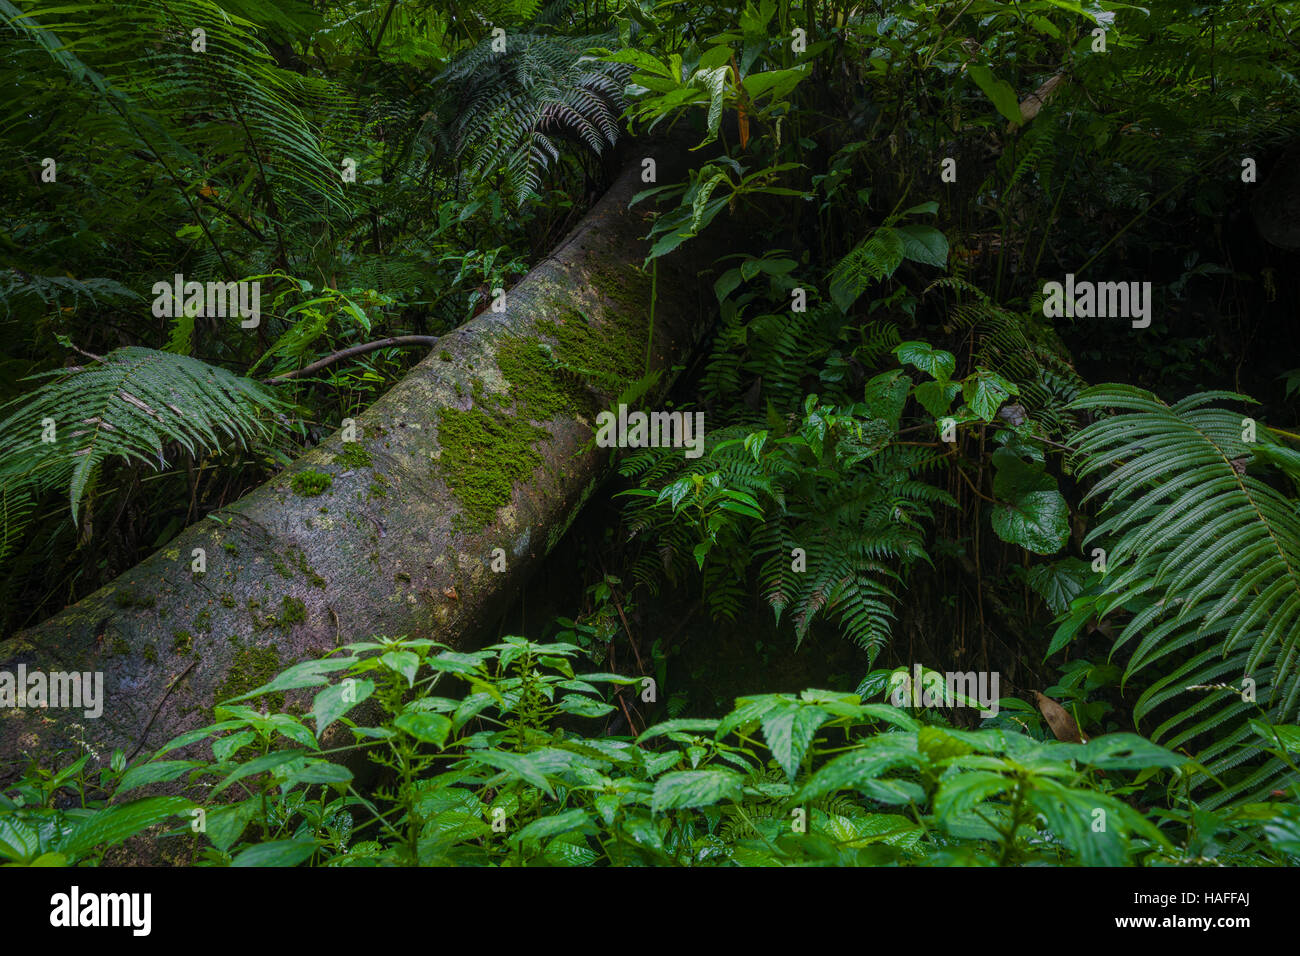 Mossy trees and lush leafs in the rainforest, Bali, Indonesia - Stock Image